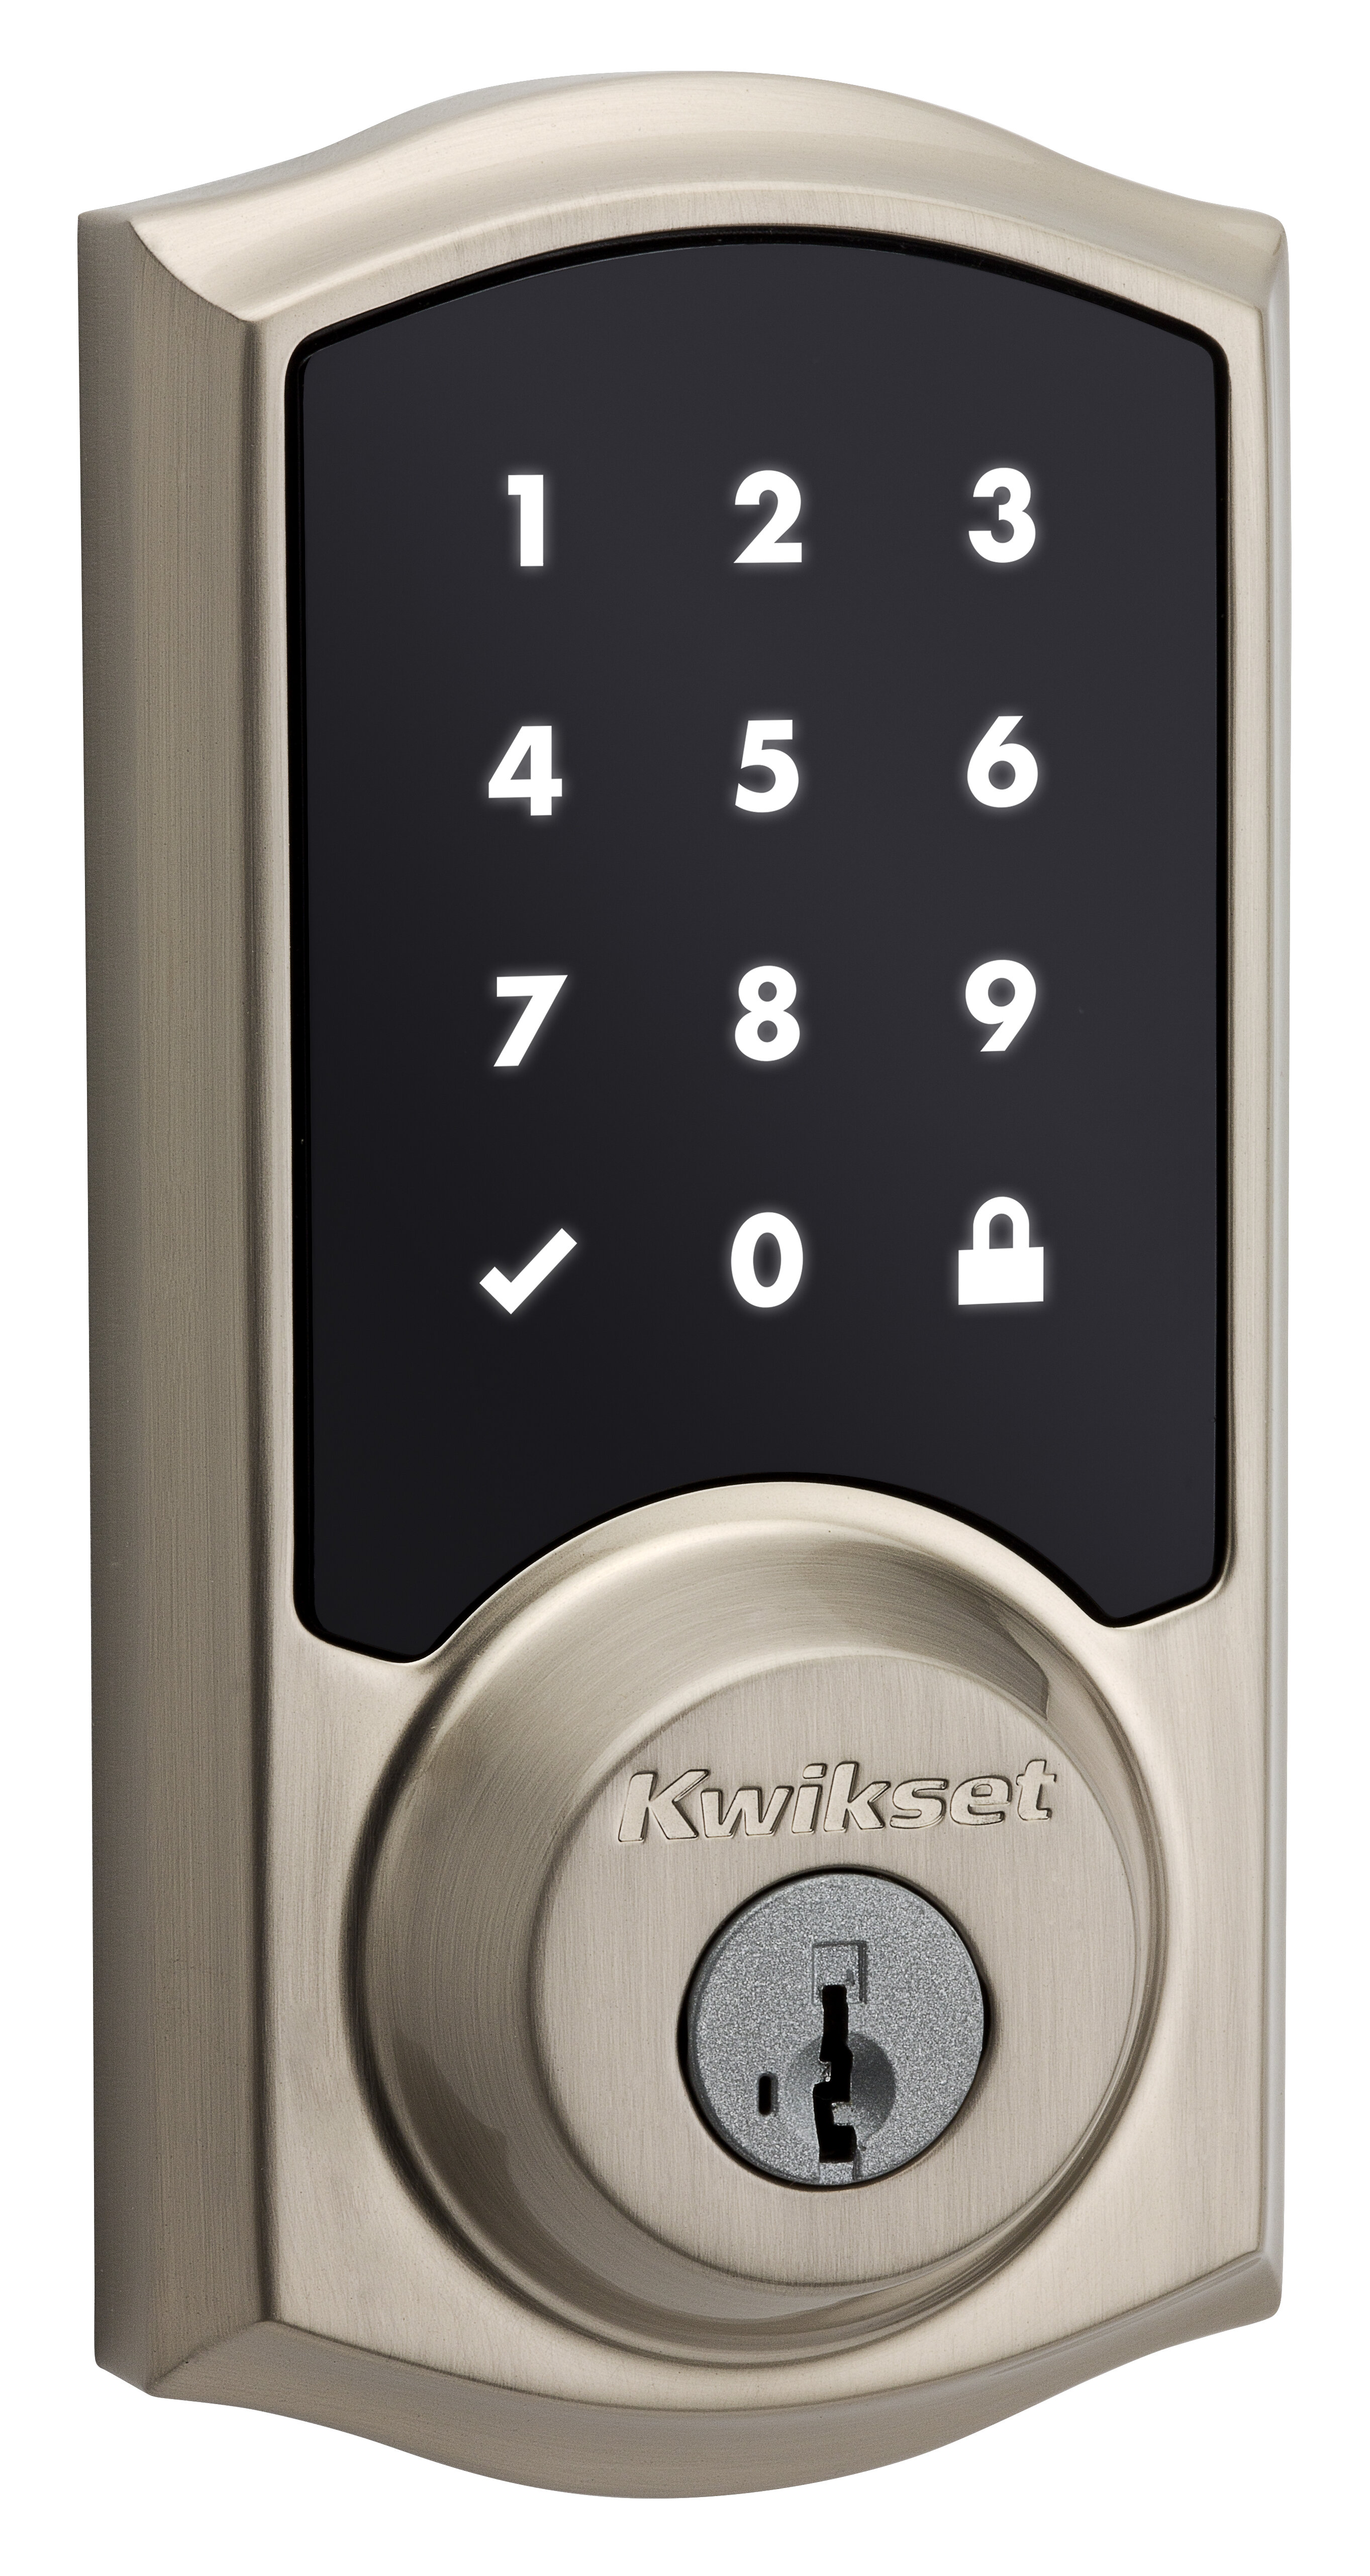 915trl15smt Smartcode Single Cylinder Electronic Deadbolt With Smartkey